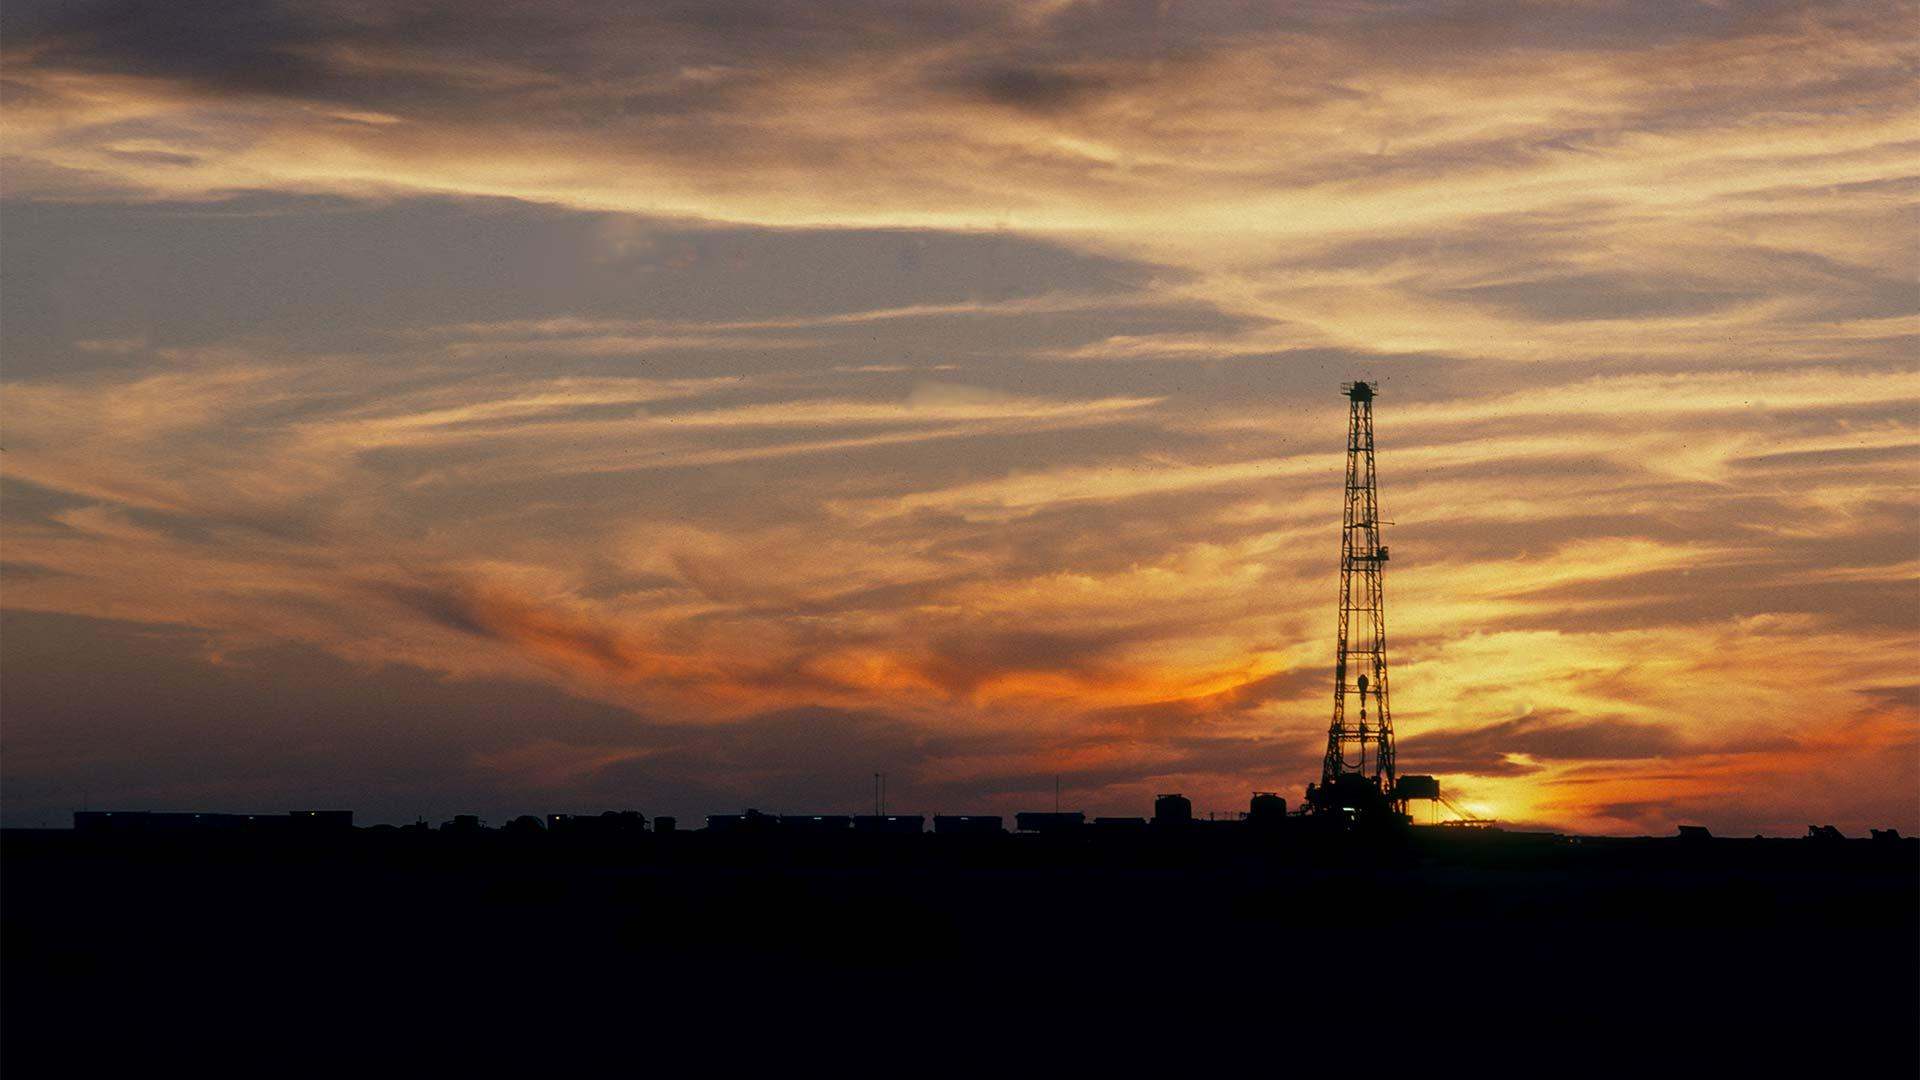 A rig silhouetted against a sunset